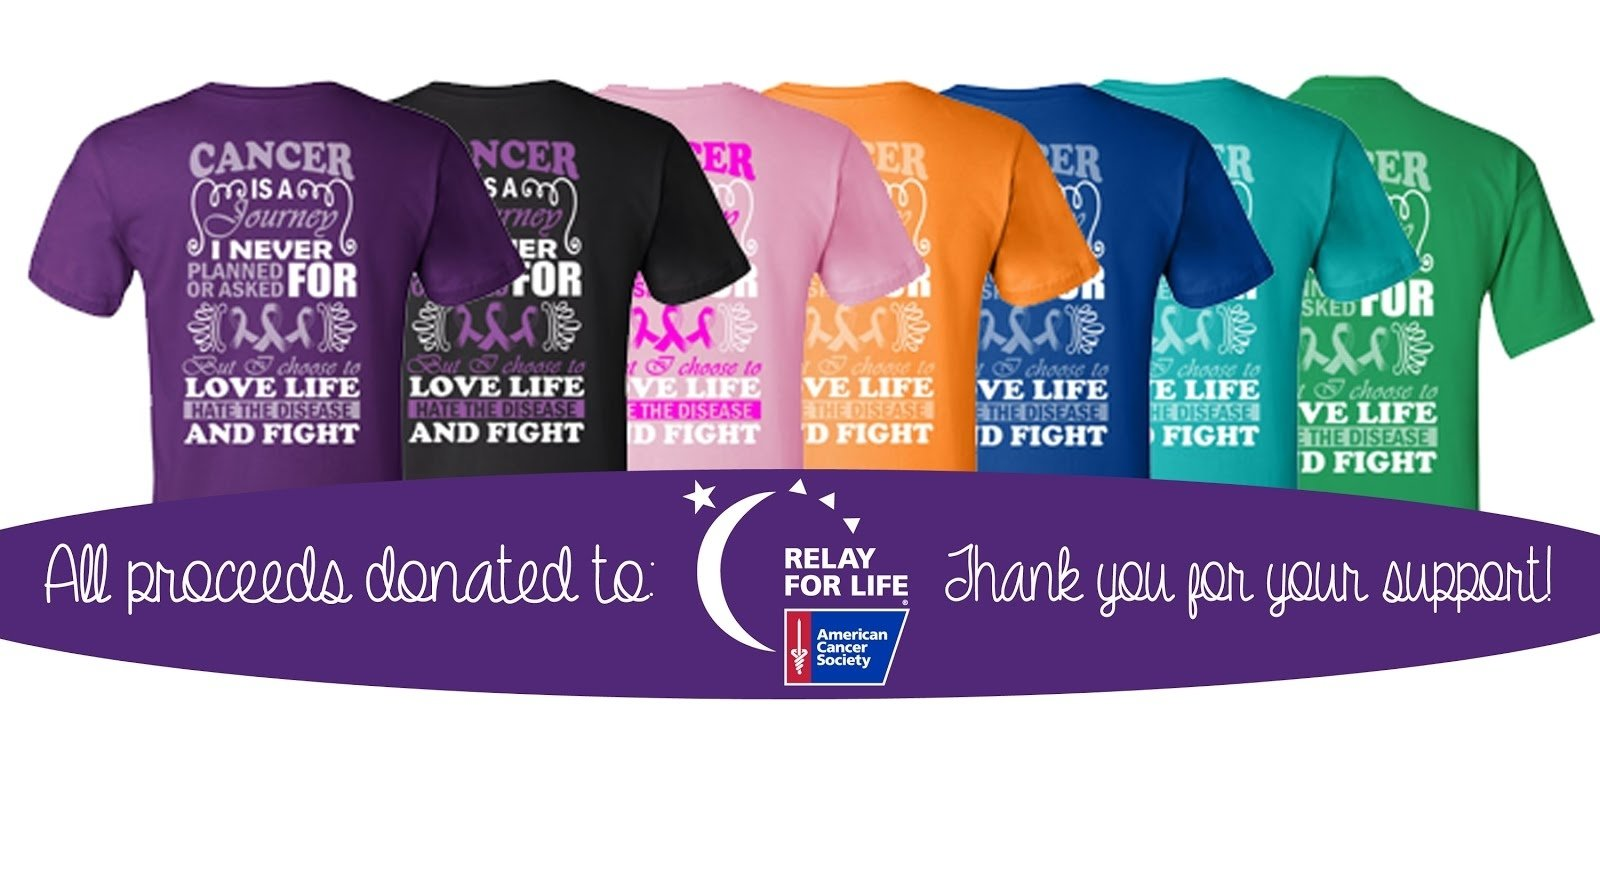 10 Trendy Relay For Life T Shirt Ideas cassi selby relay for life 1 2020